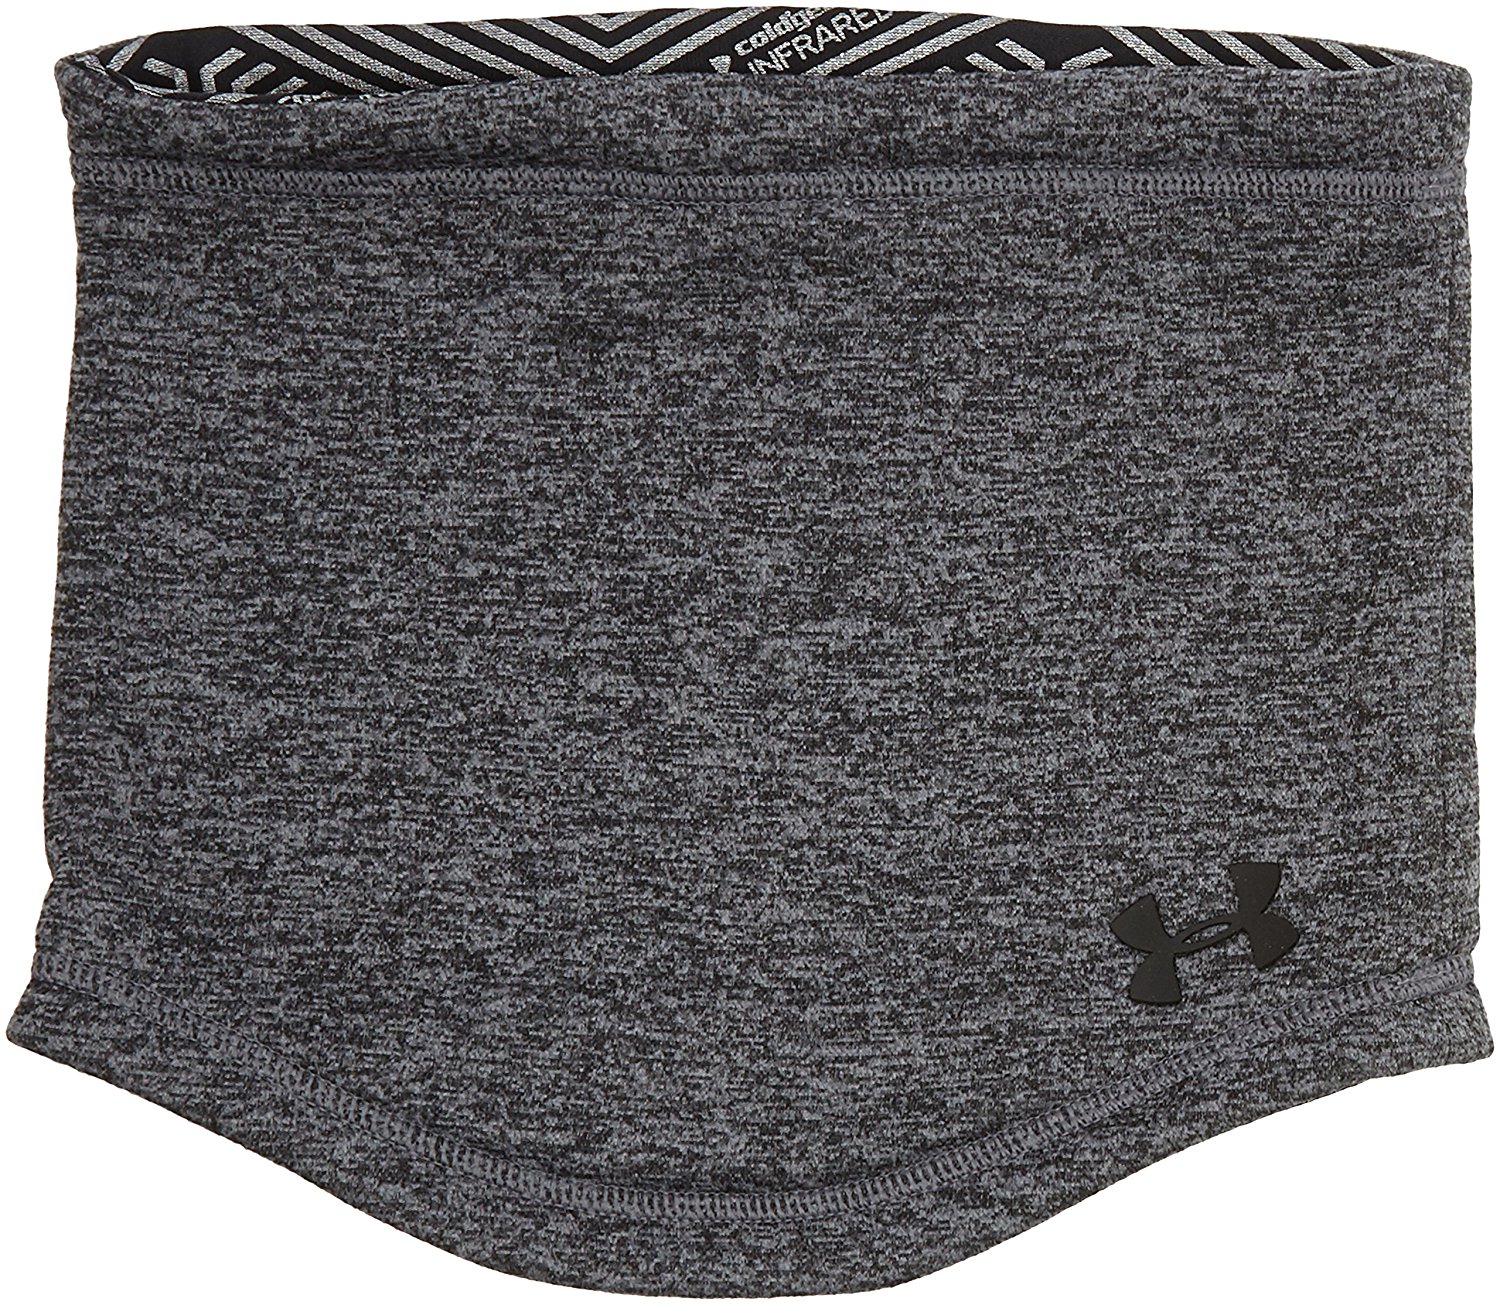 Magnificent Neck Cover | Extraordinary Under Armour Neck Gaiter